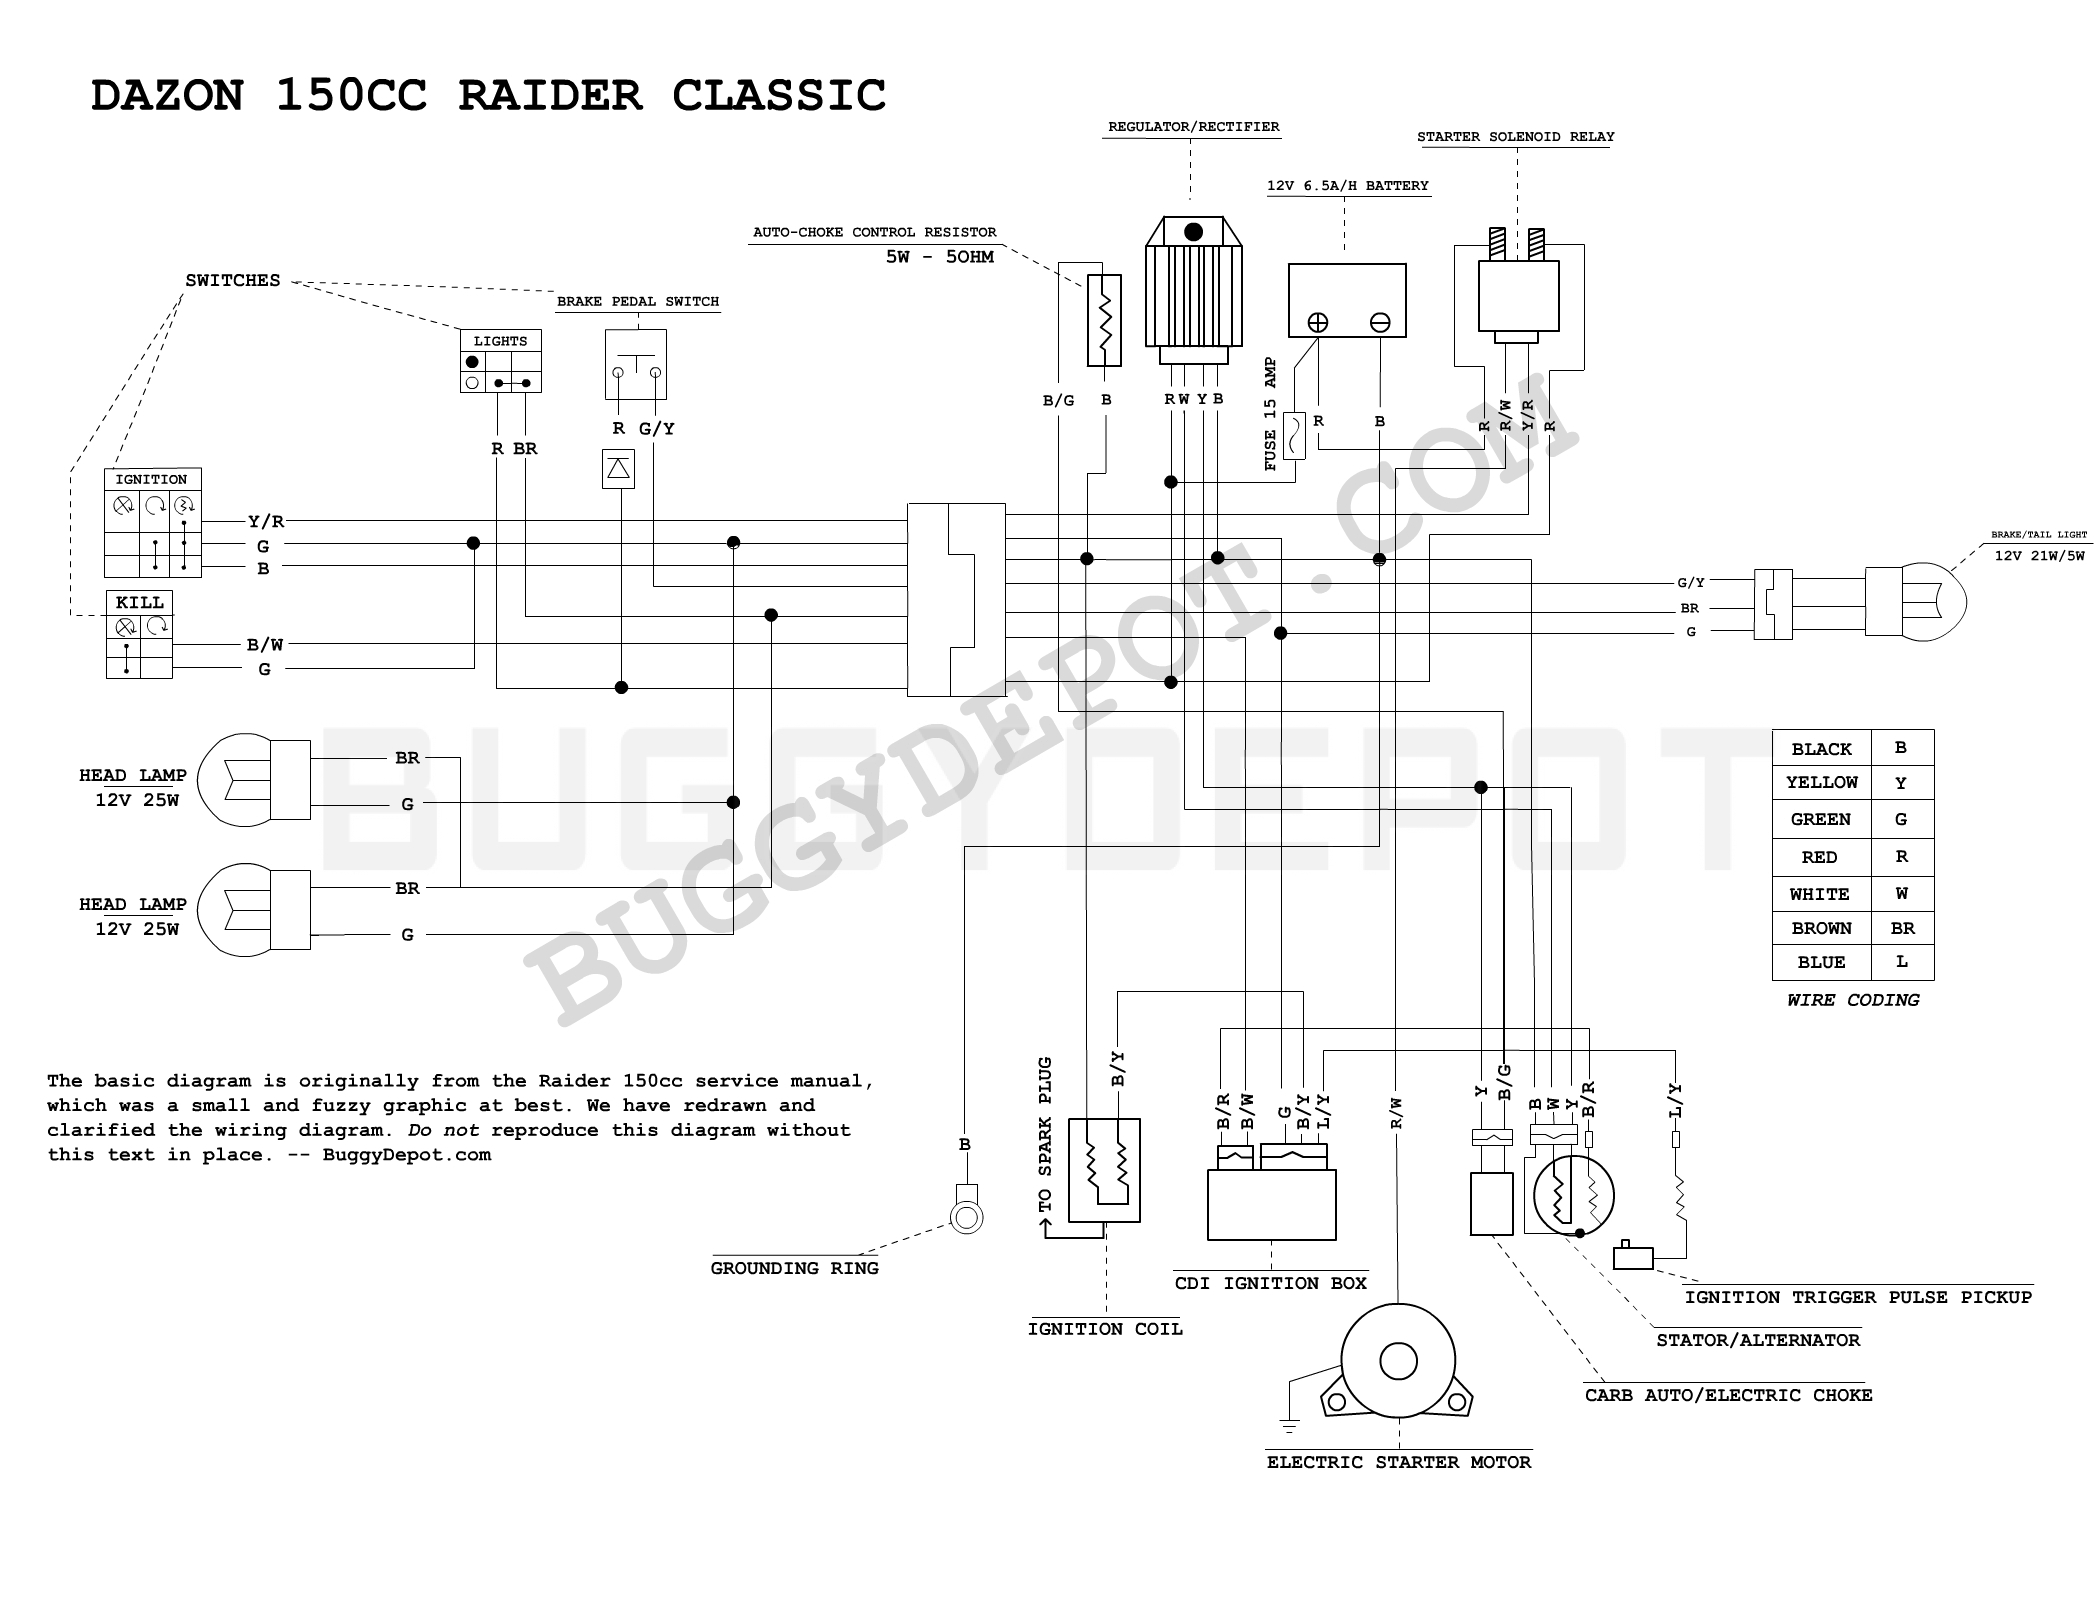 Dazon Raider Clic - Wiring Diagram - Buggy Depot Technical Center on 150 baja wiring-diagram, gy6 150cc wiring-diagram, yerf dog 150cc go kart wiring-diagram, hensim gy6 wiring-diagram, scorpion rt 150cc buggy wiring-diagram, howhit 150cc wiring-diagram, twister kart wiring-diagram, monsoon wiring-diagram, yerf dog spiderbox wiring-diagram,